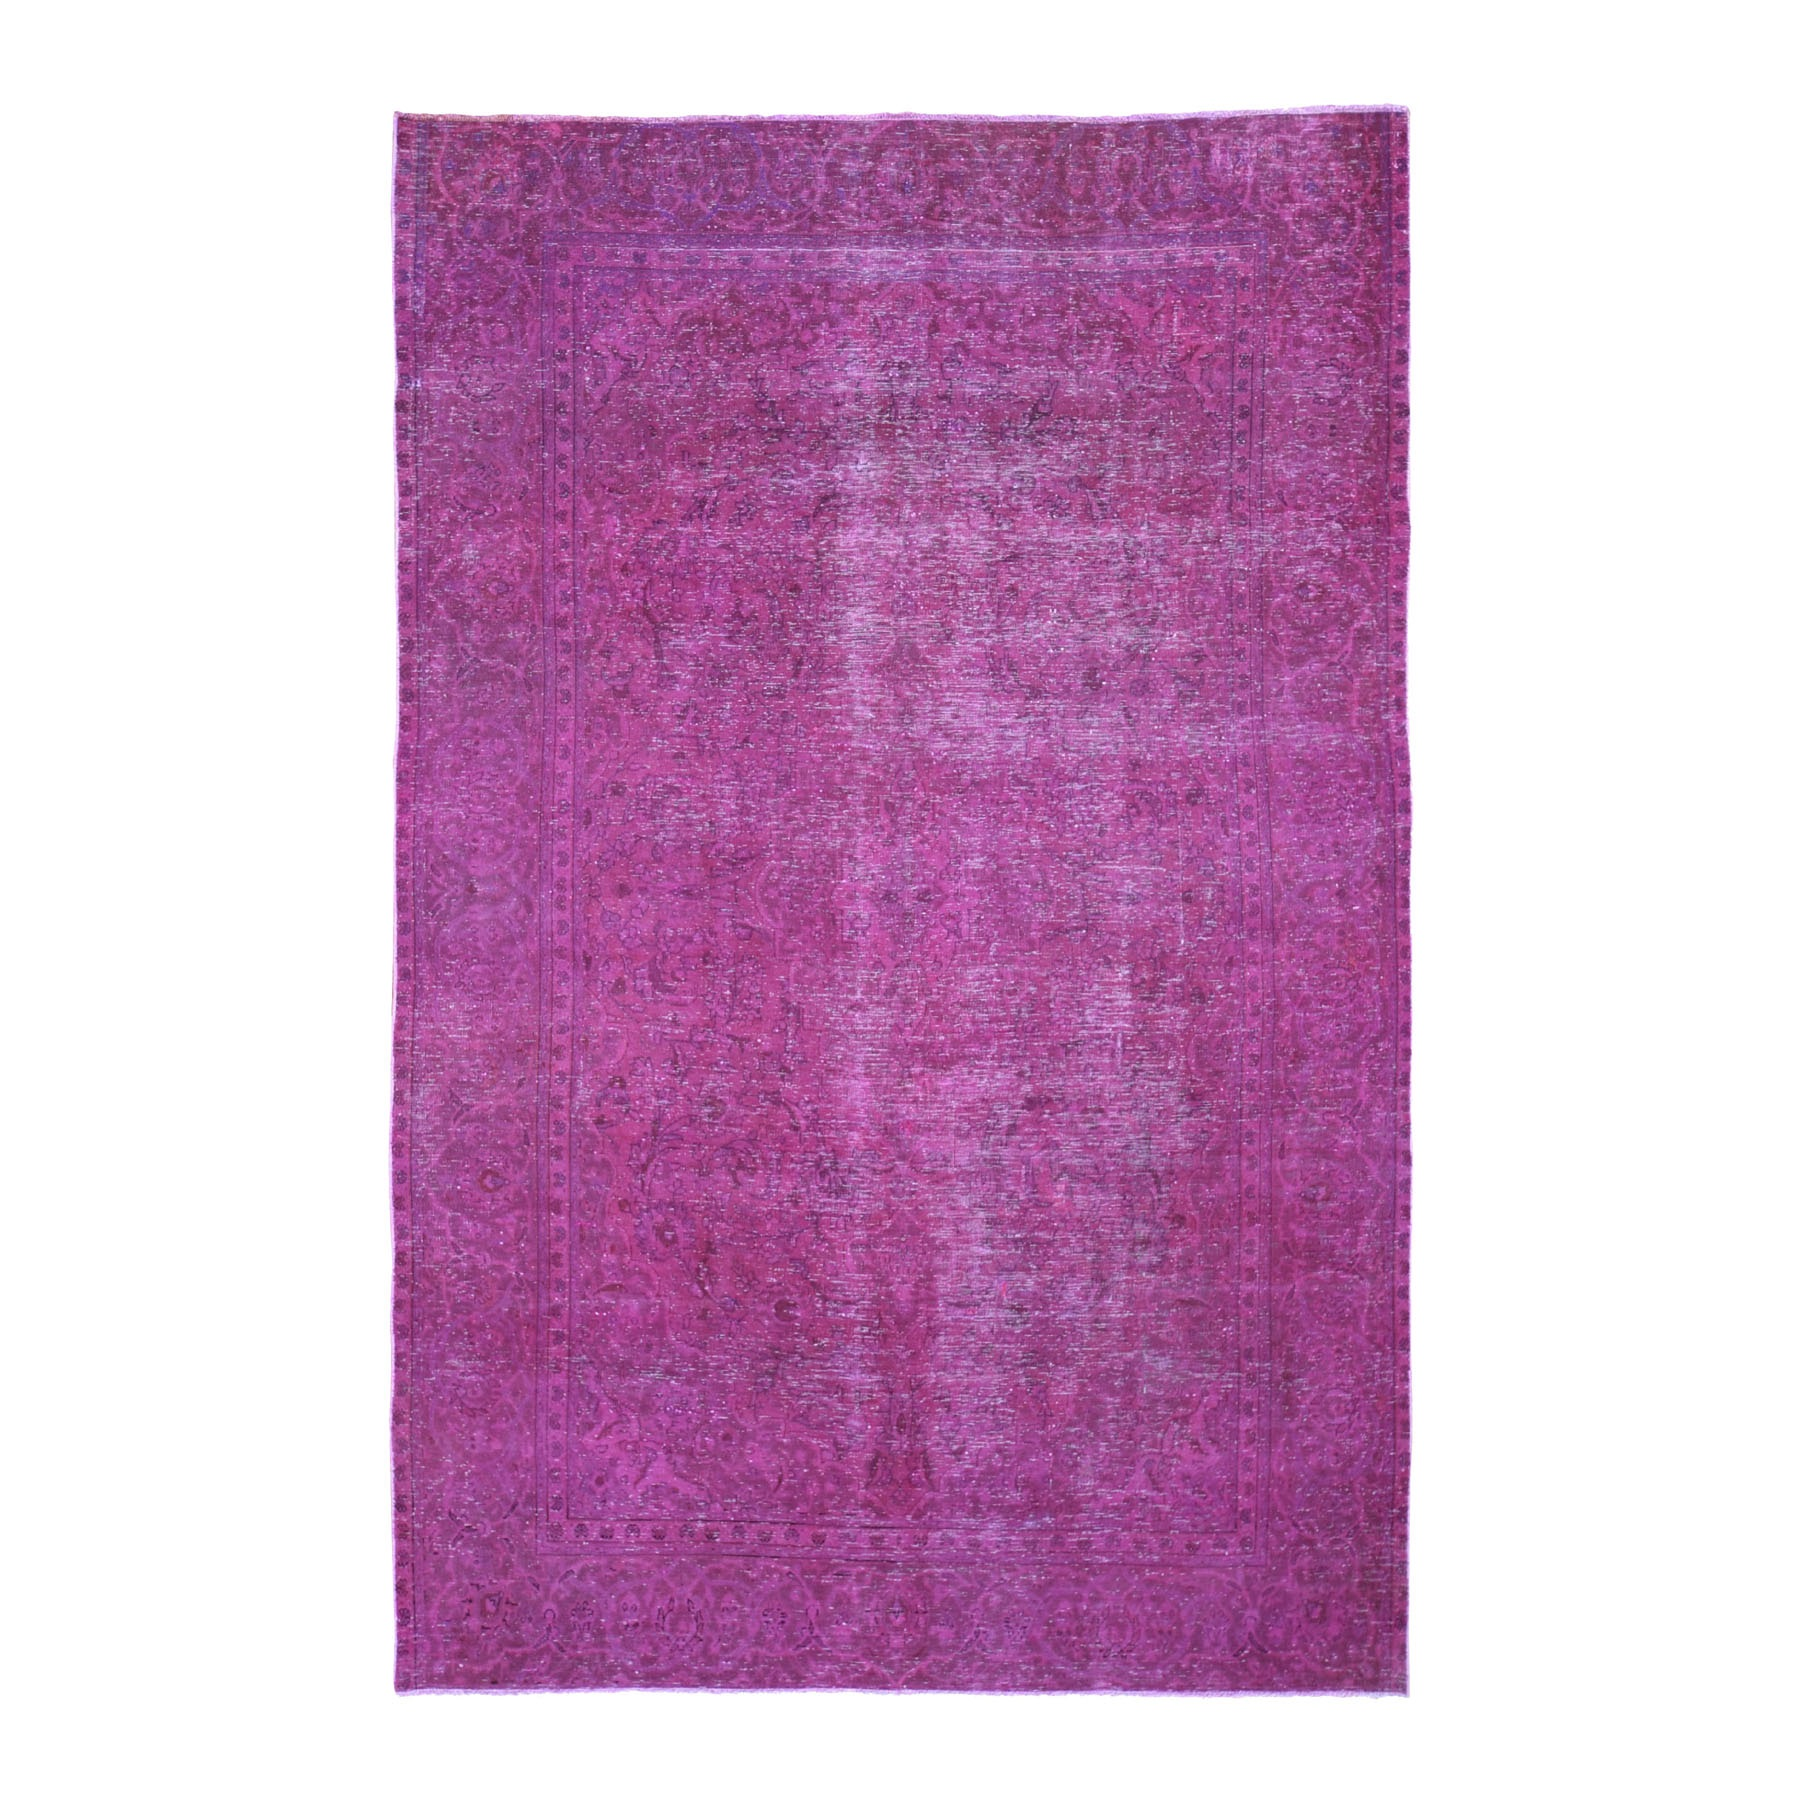 Fetneh Collection And Vintage Overdyed Collection Hand Knotted Pink Rug No: 1118416